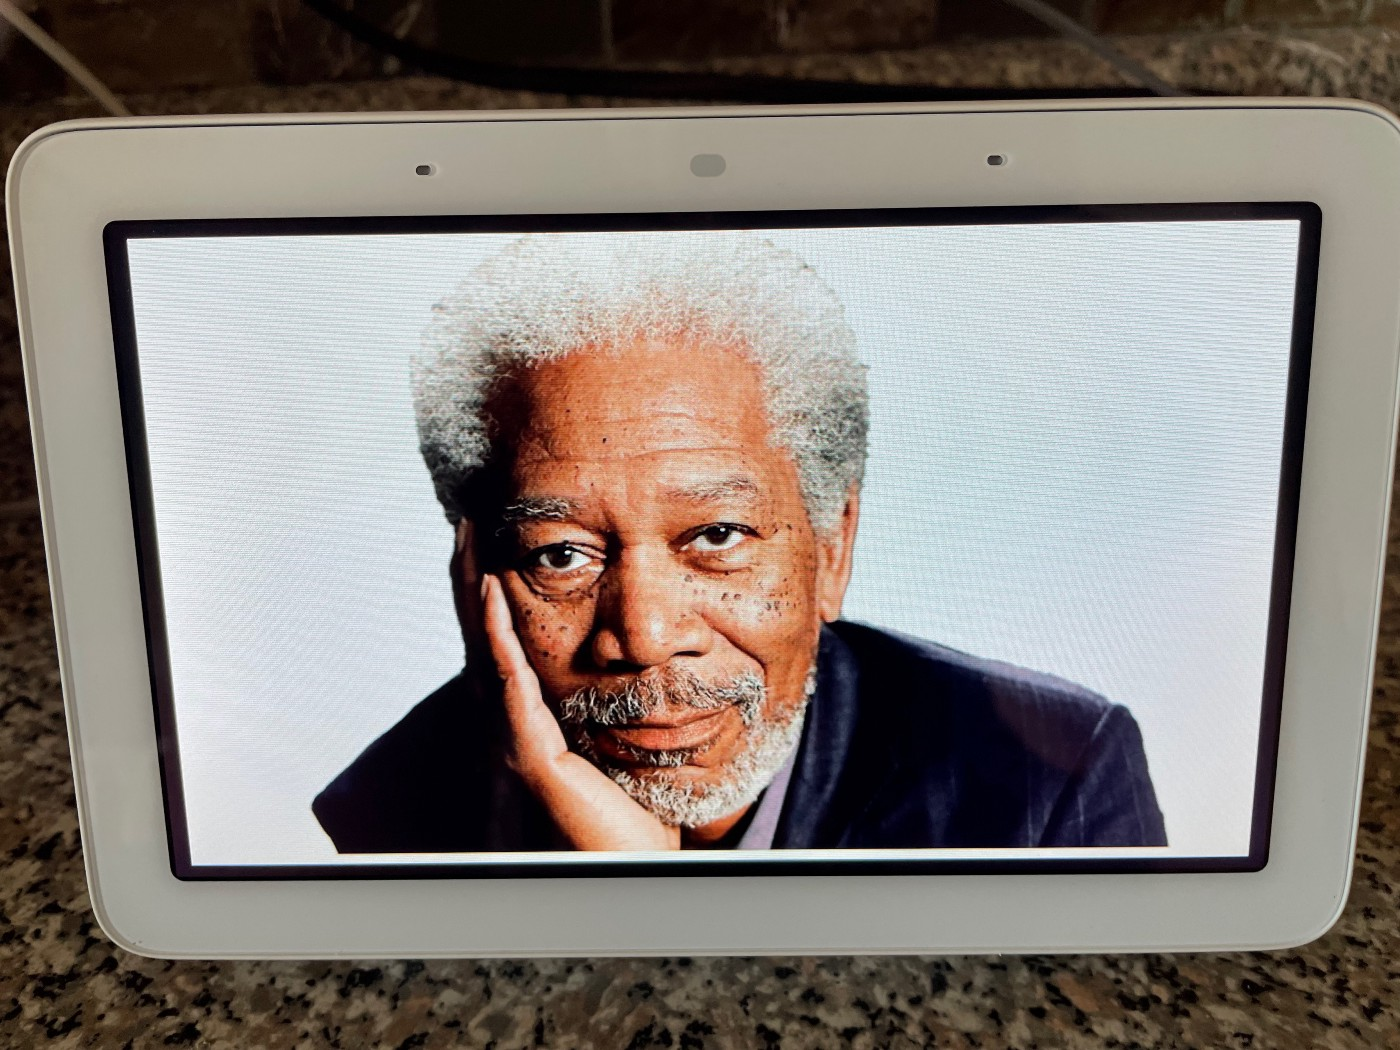 The face of American actor Morgan Freeman stares from within a Google Nest screen display on author Judy Millar's kitchen counter.